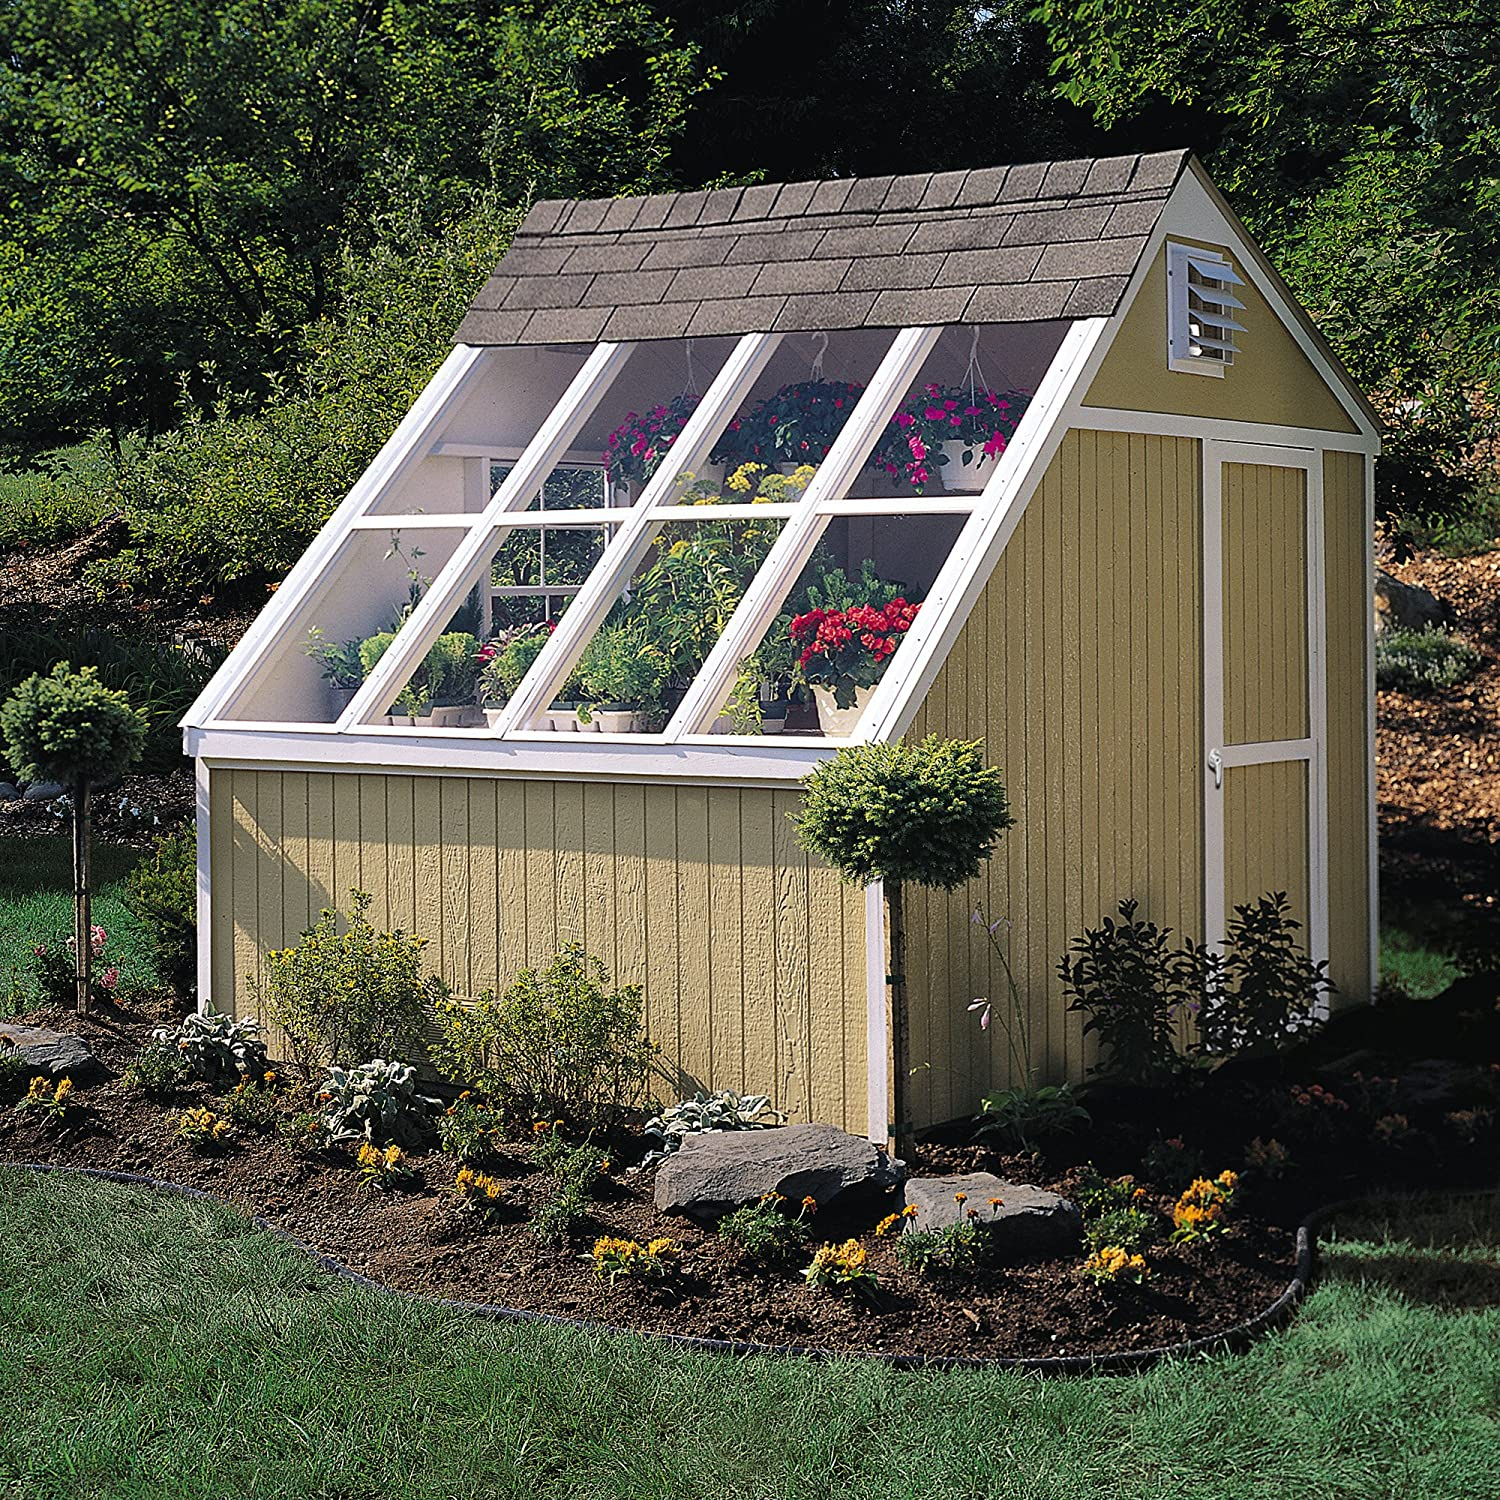 Delicieux Amazon.com : Handy Home Products Phoenix Solar Shed With Floor, 10 By  8 Feet : Storage Sheds : Garden U0026 Outdoor